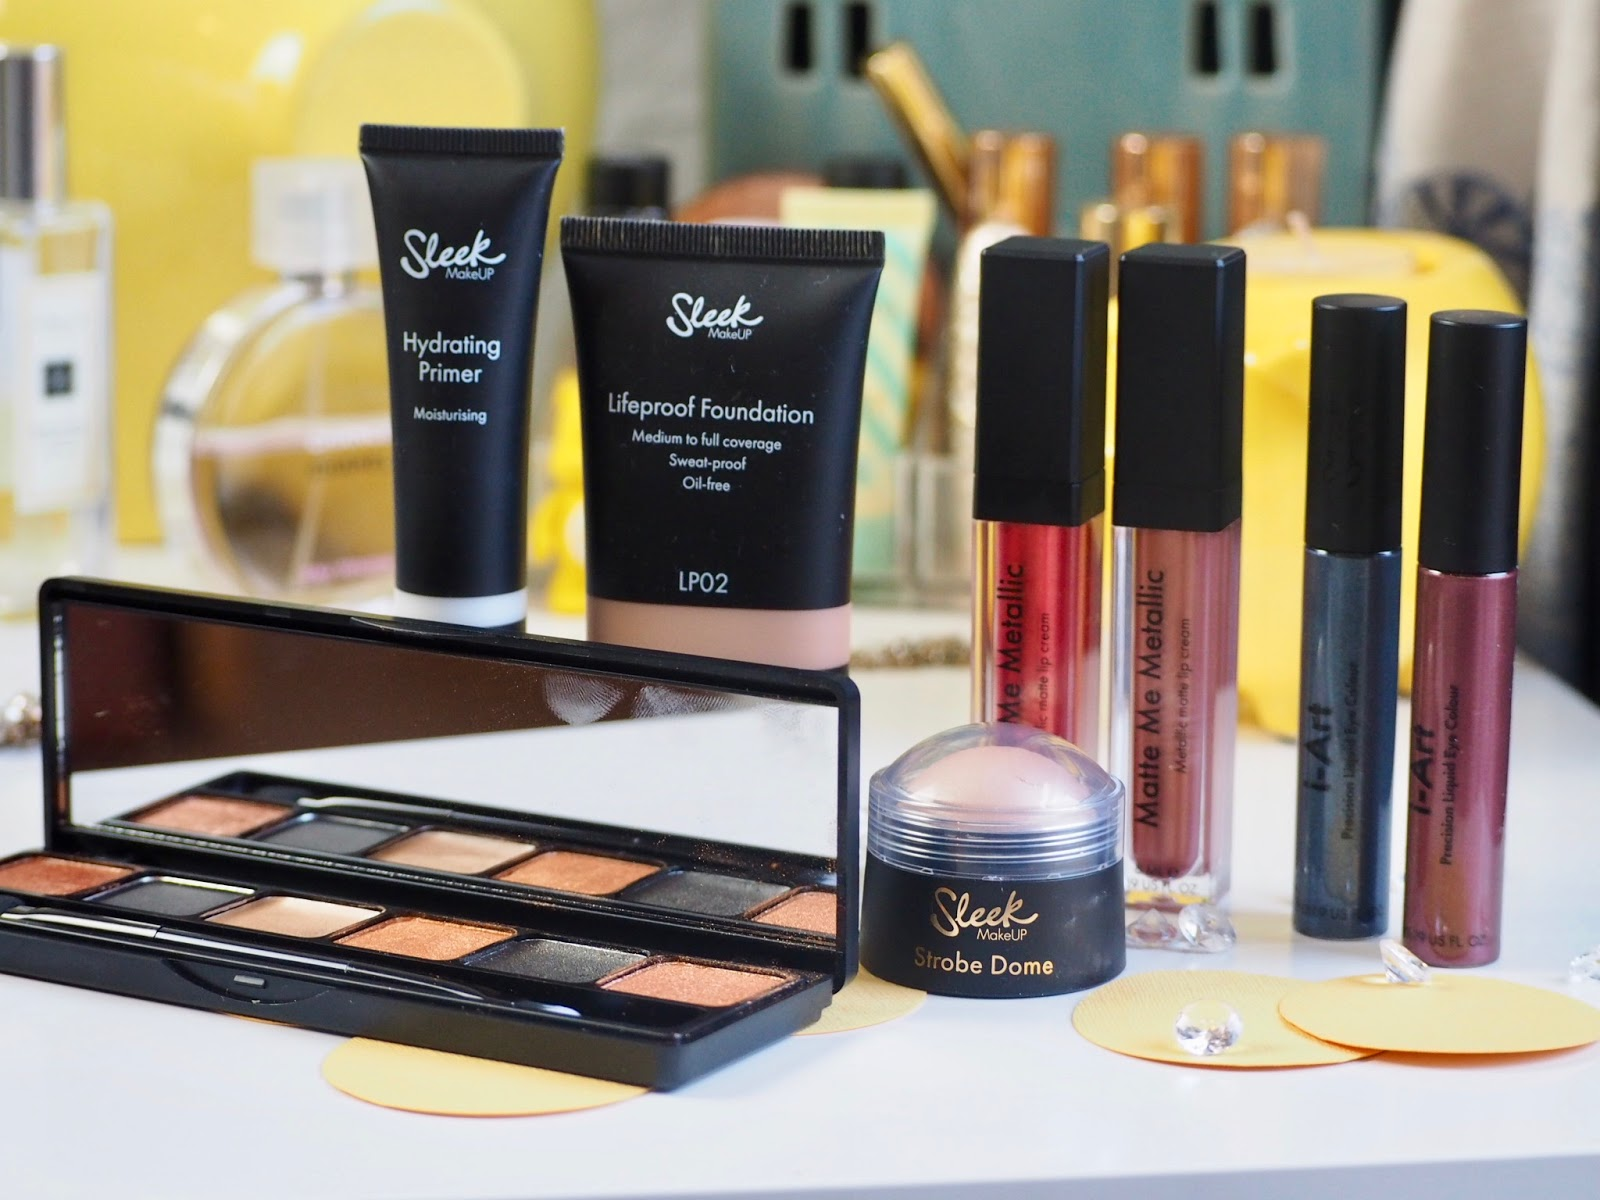 New In: Sleek Make Up + Swatches*